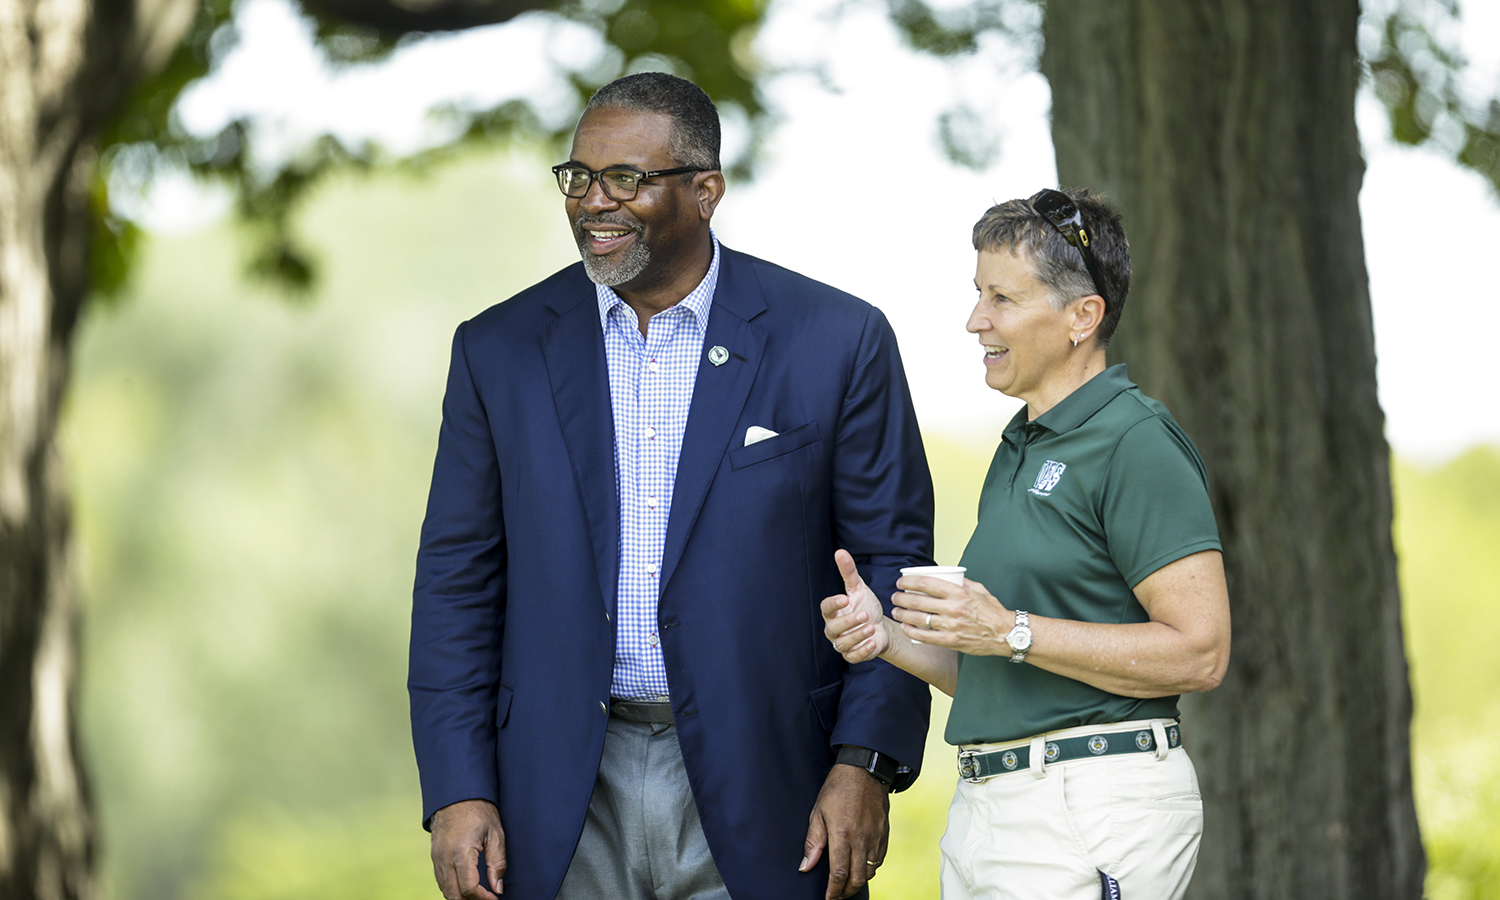 President Gregory J. Vincent '83 chats with William Smith Athletic Director Deb Steward during a William Smith Soccer scrimmage.